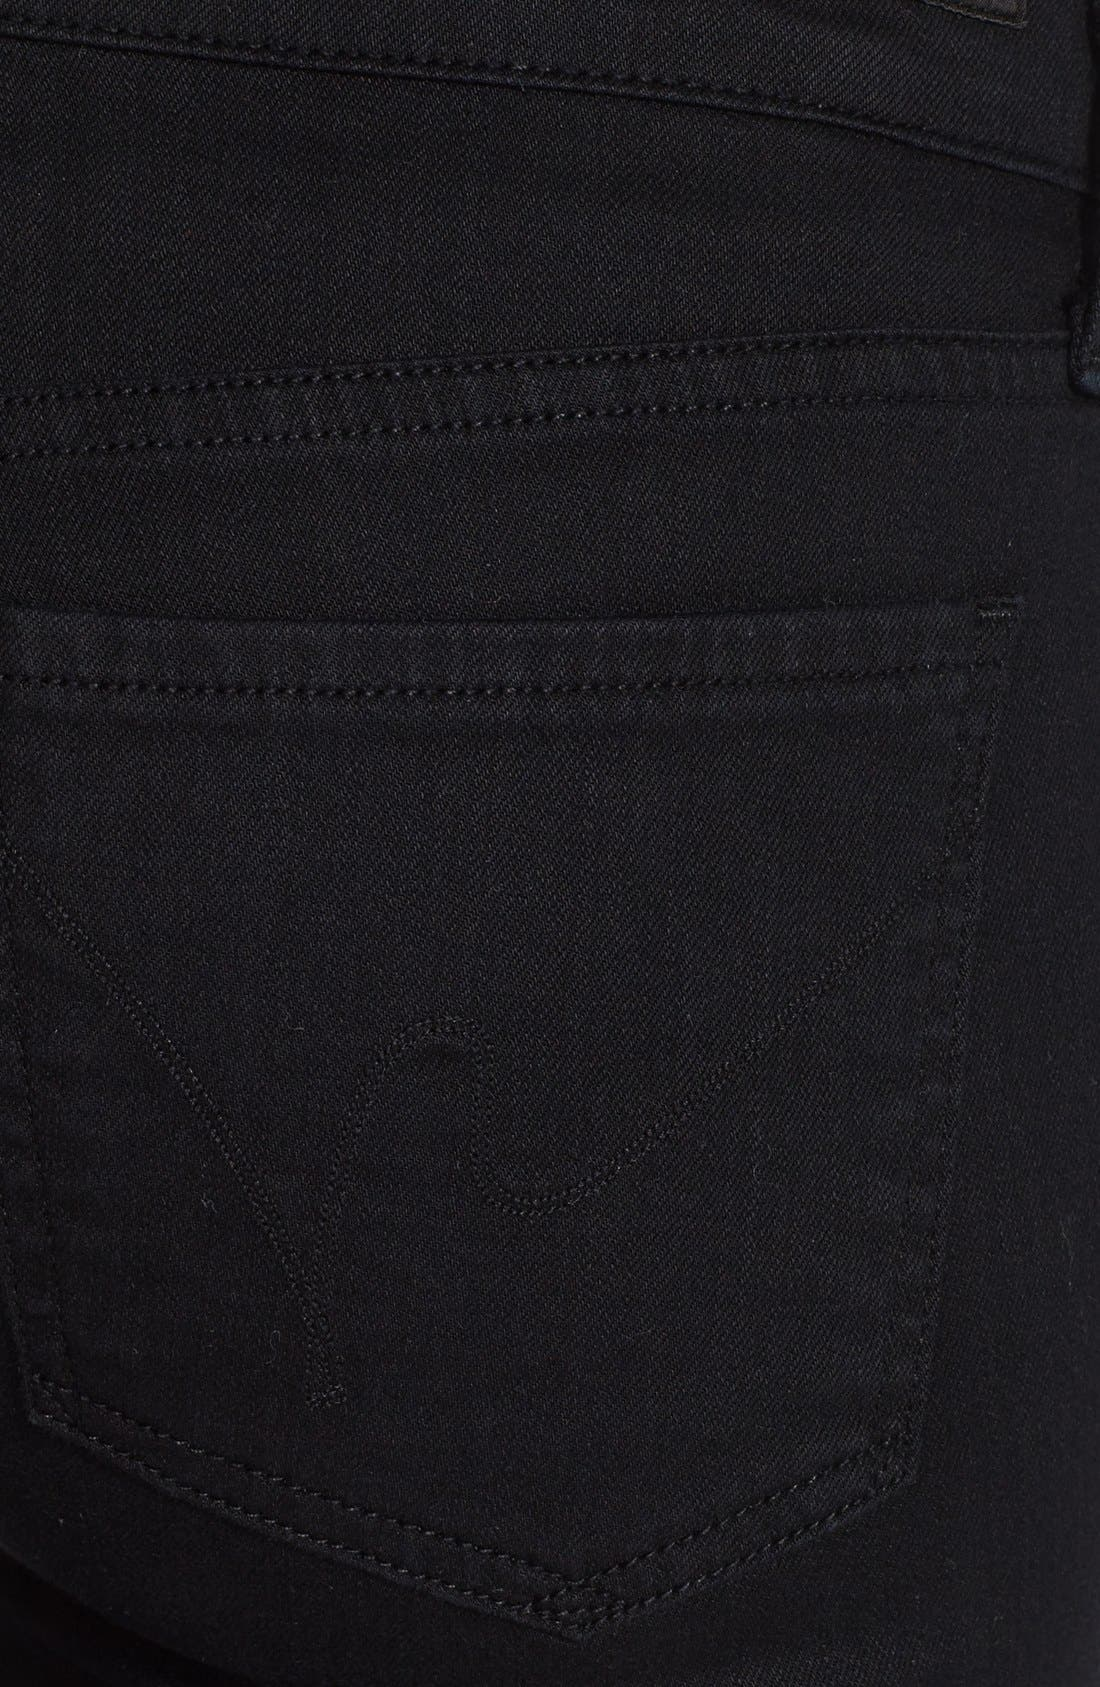 Alternate Image 3  - Citizens of Humanity 'Ava' Straight Leg Jeans (Black Diamond)